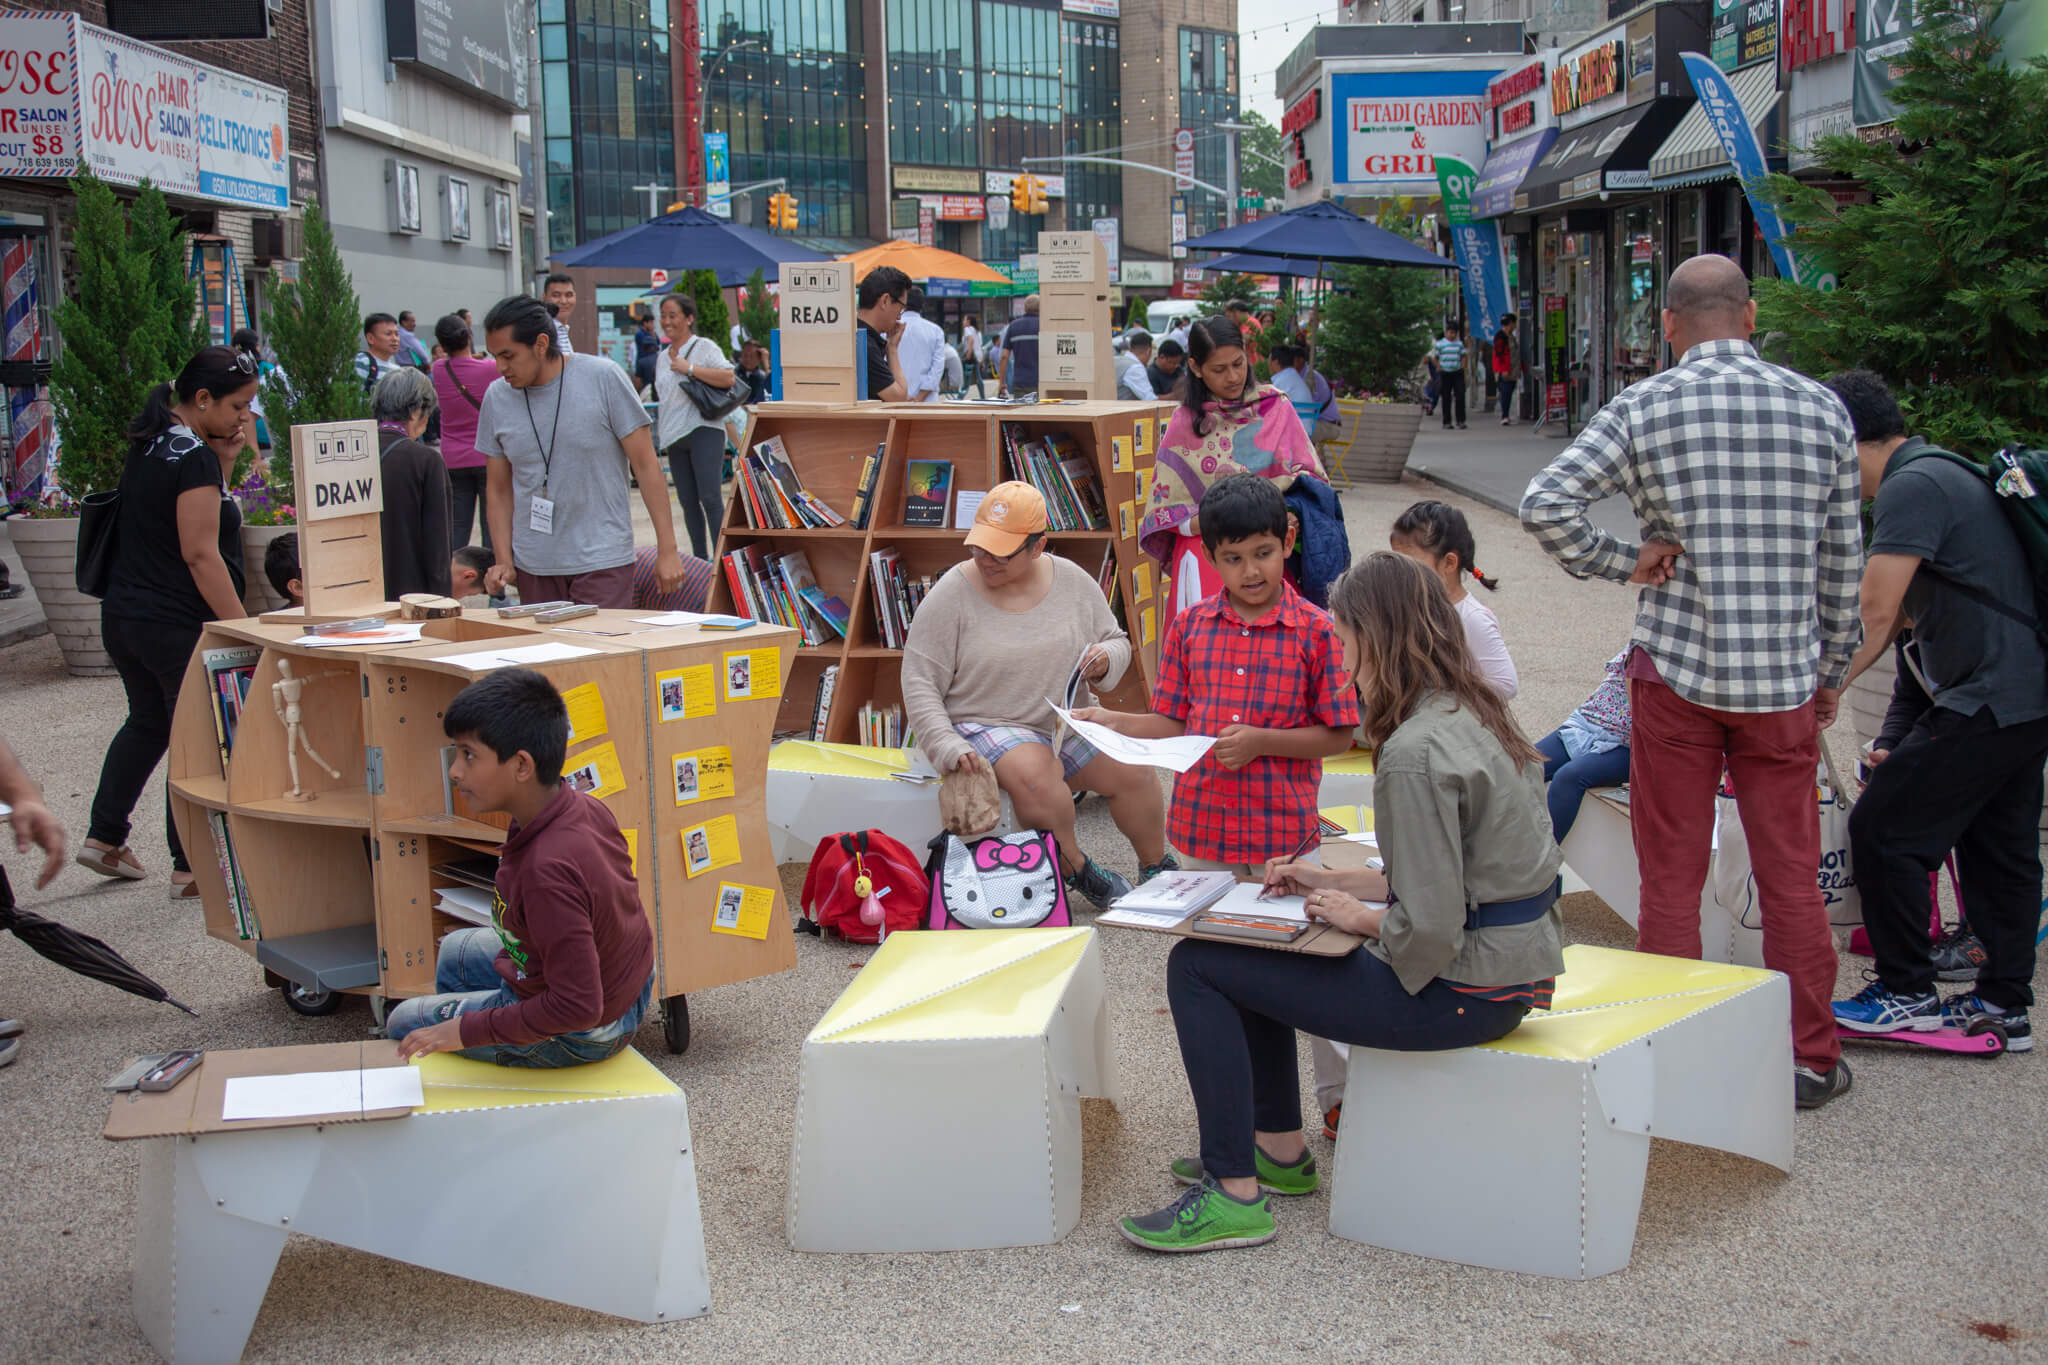 Image: People drawing at a DRAW pop-up in NYC.